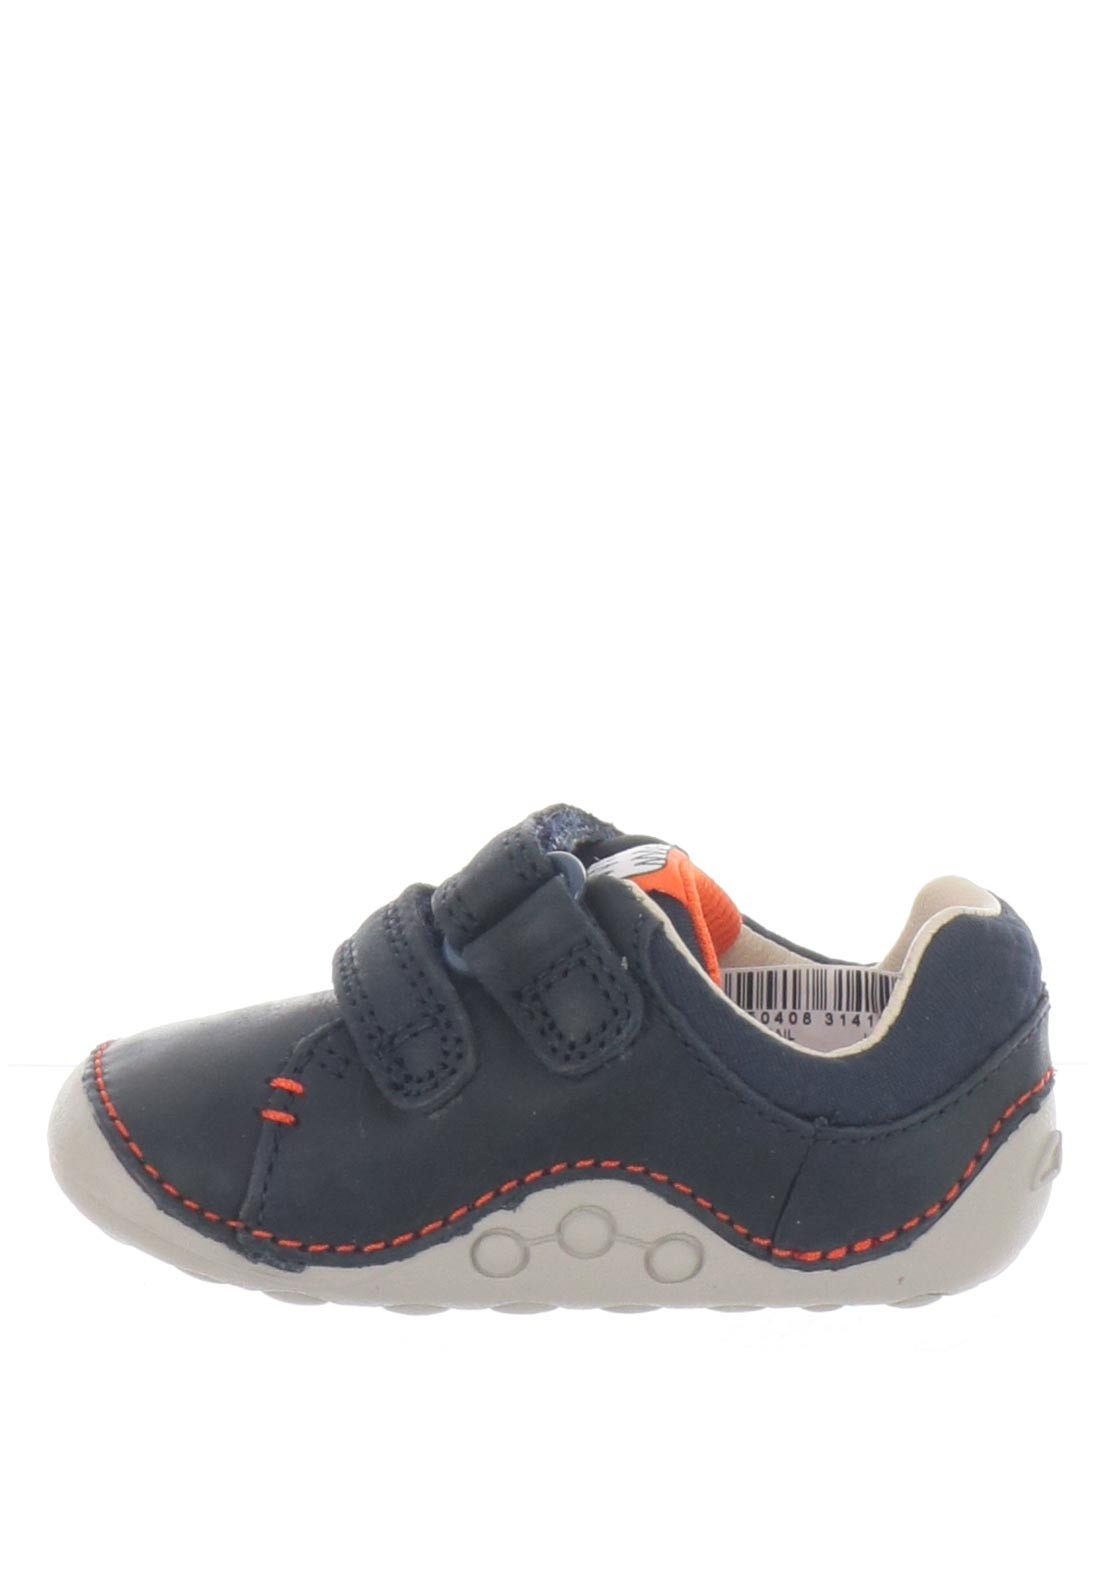 b16410de Clarks Baby Boys Tiny Trail Leather Pre-Walking Shoes, Navy